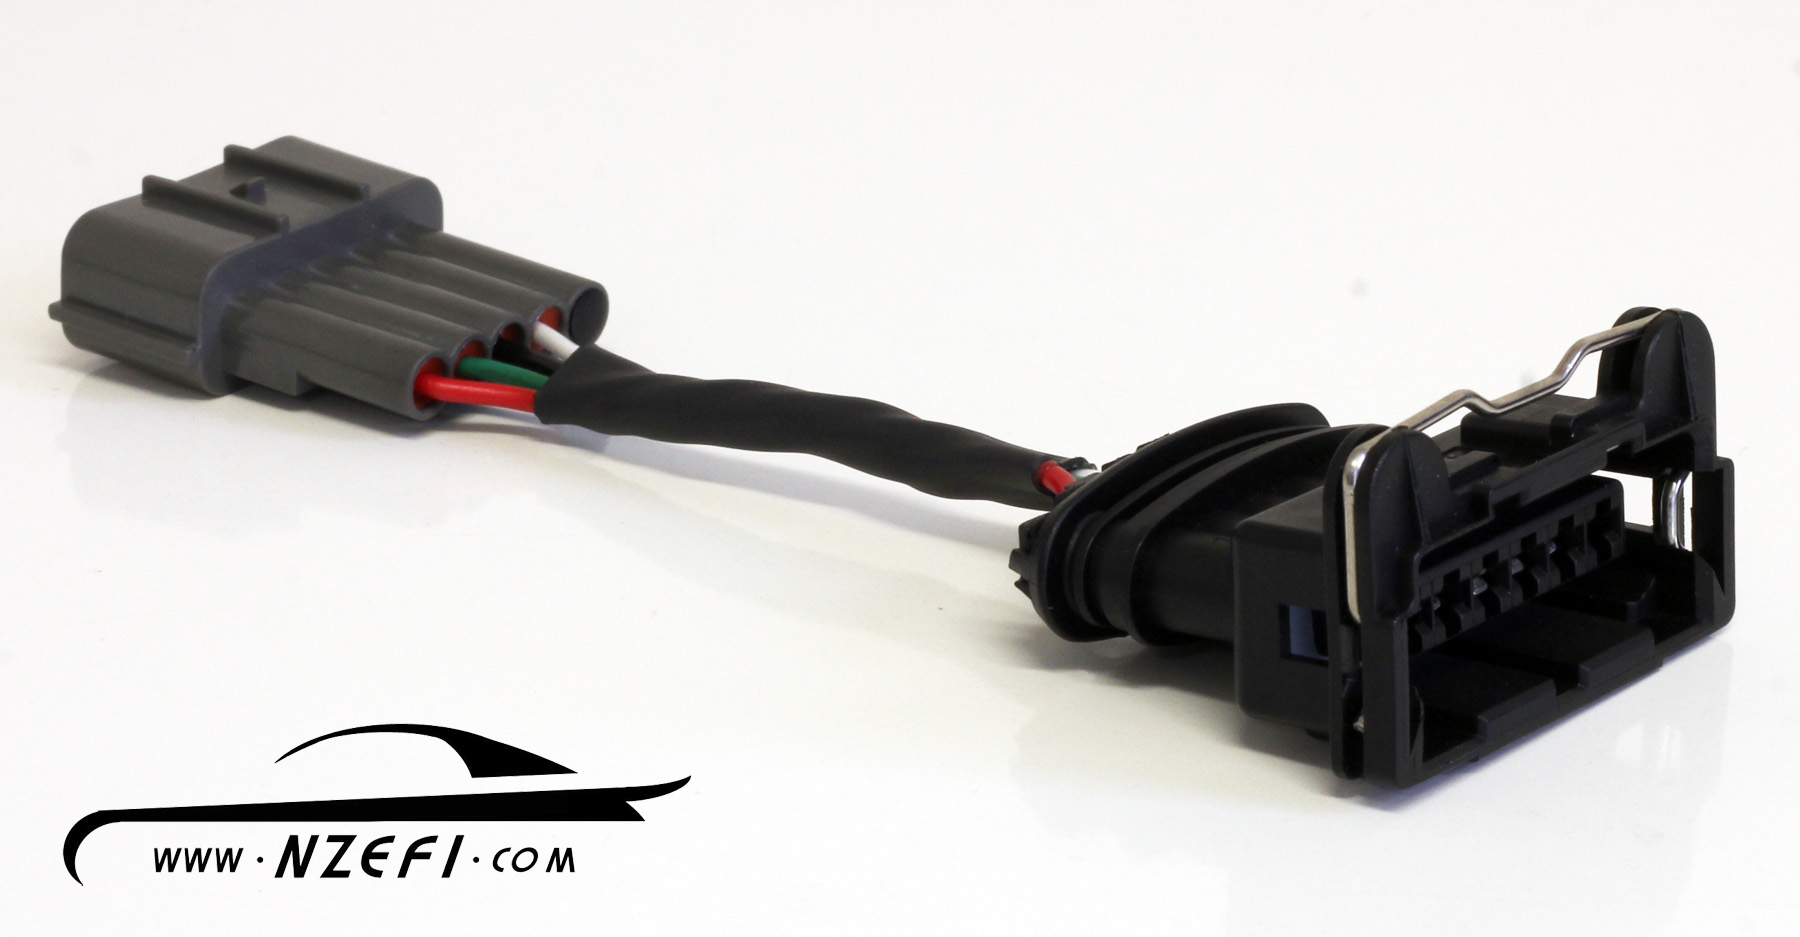 hight resolution of afm adapter harness rb20 rb25 s1 rb26 upgrading to z32 afm nzefi nissan maf wire harness